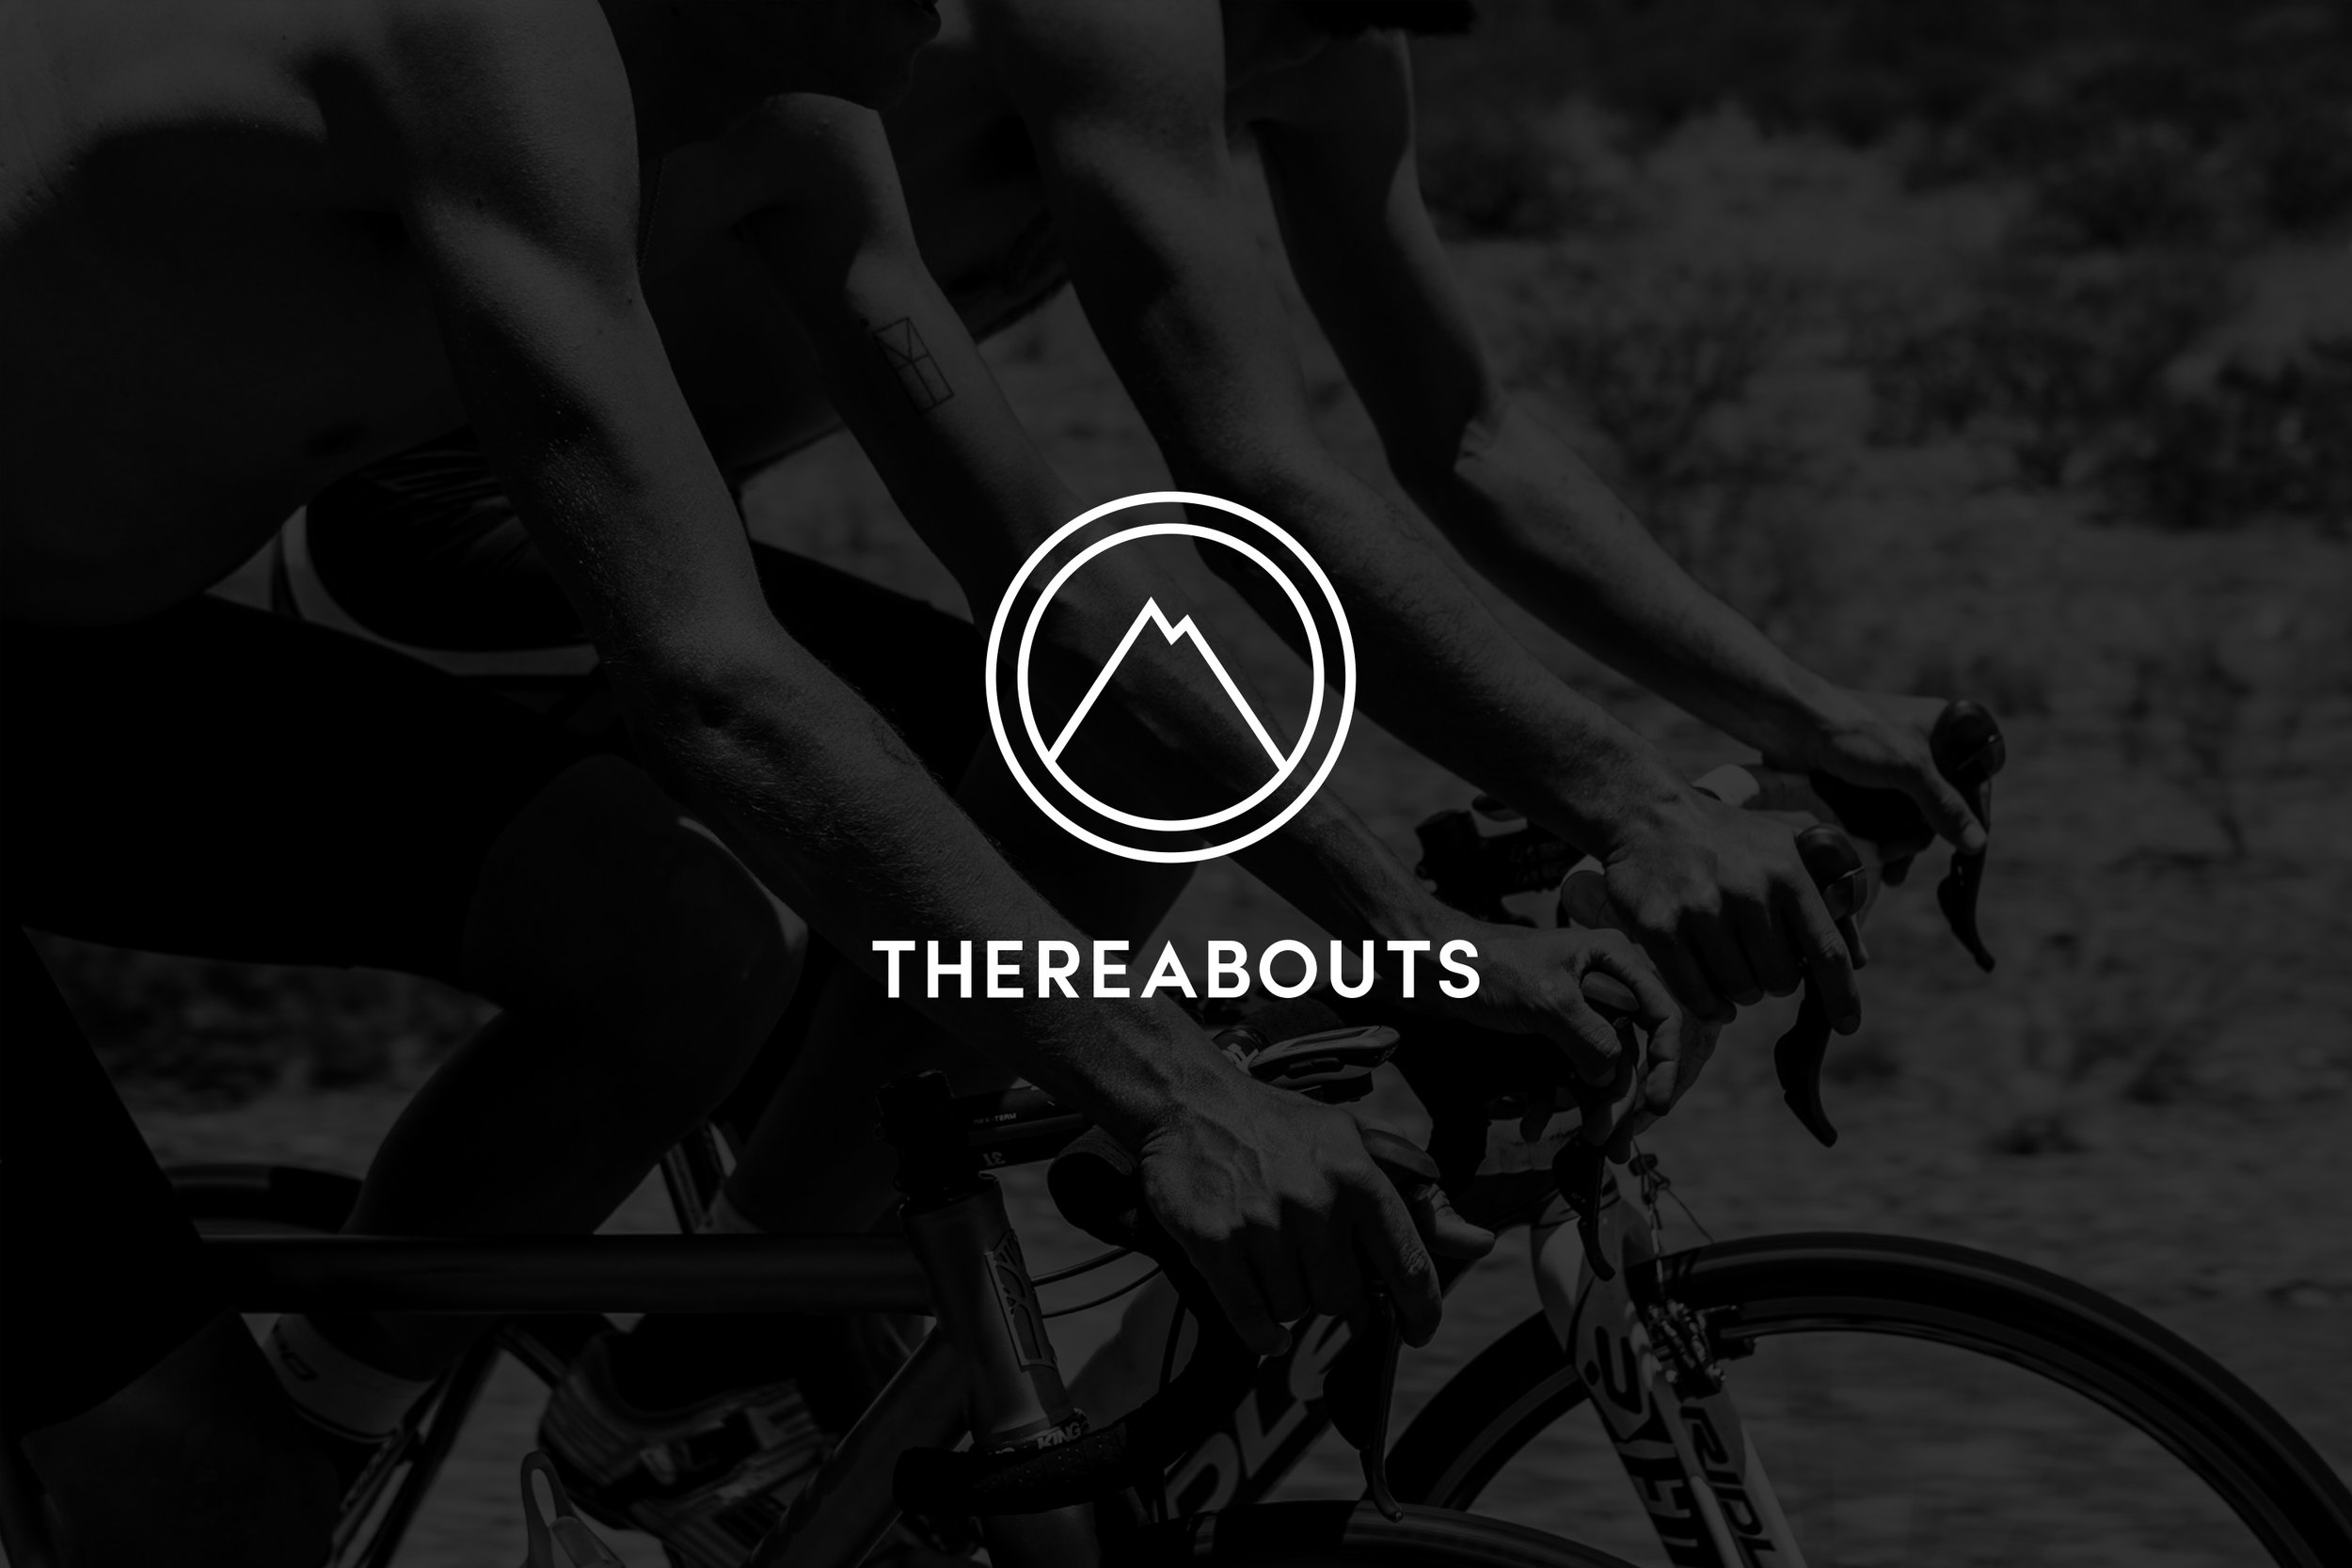 Thereabouts_Folio_Logo_image.jpg